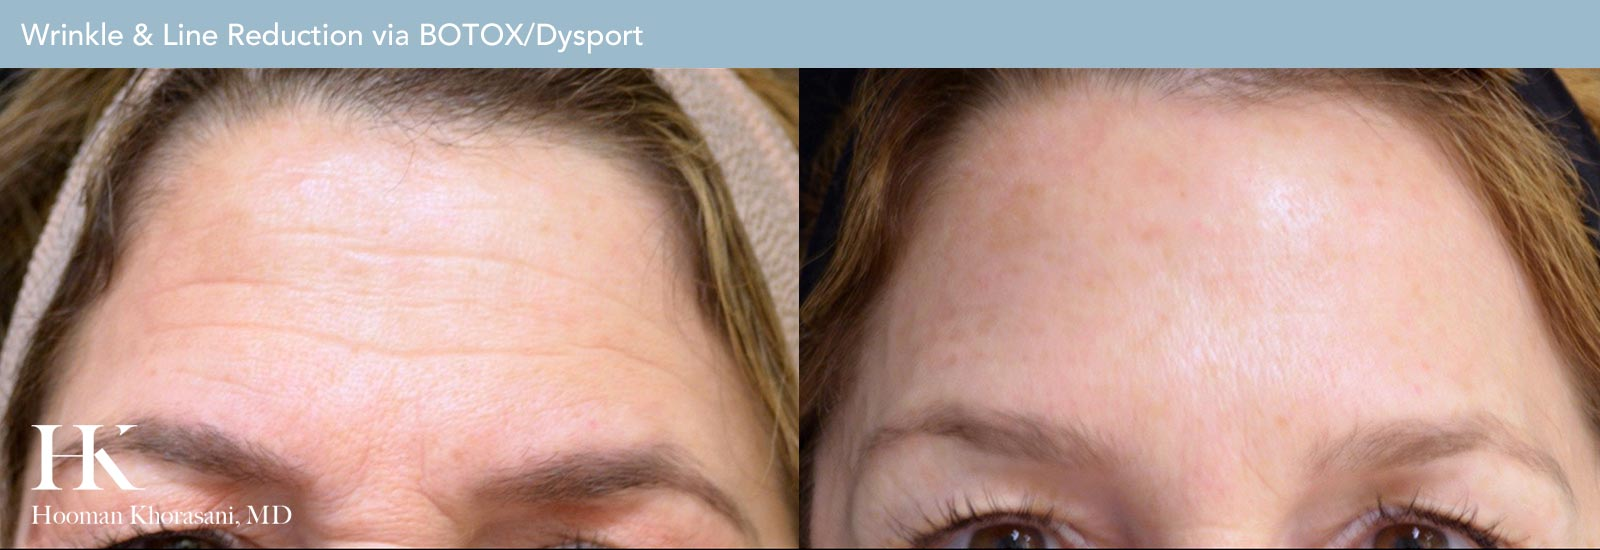 Wrinkle & Line Reduction Before and After Case